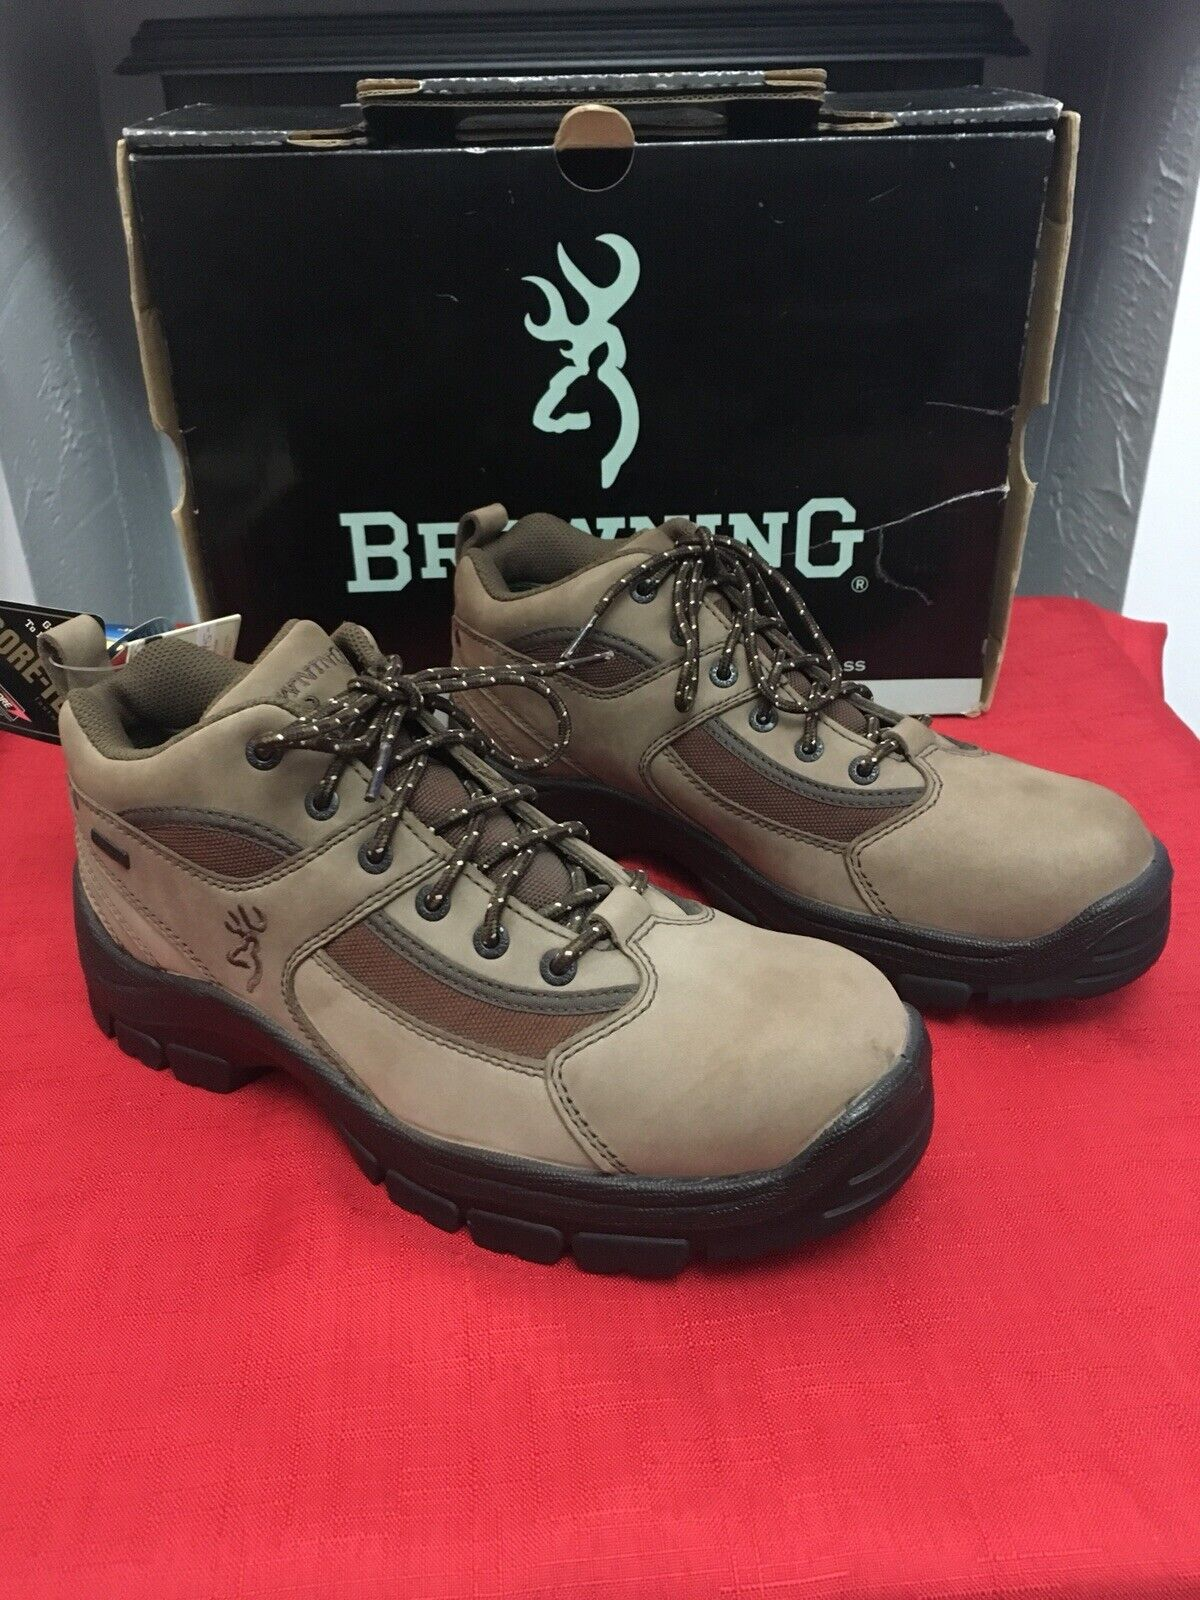 Browning Sporting Walking shoes Size 7 In Light Brown